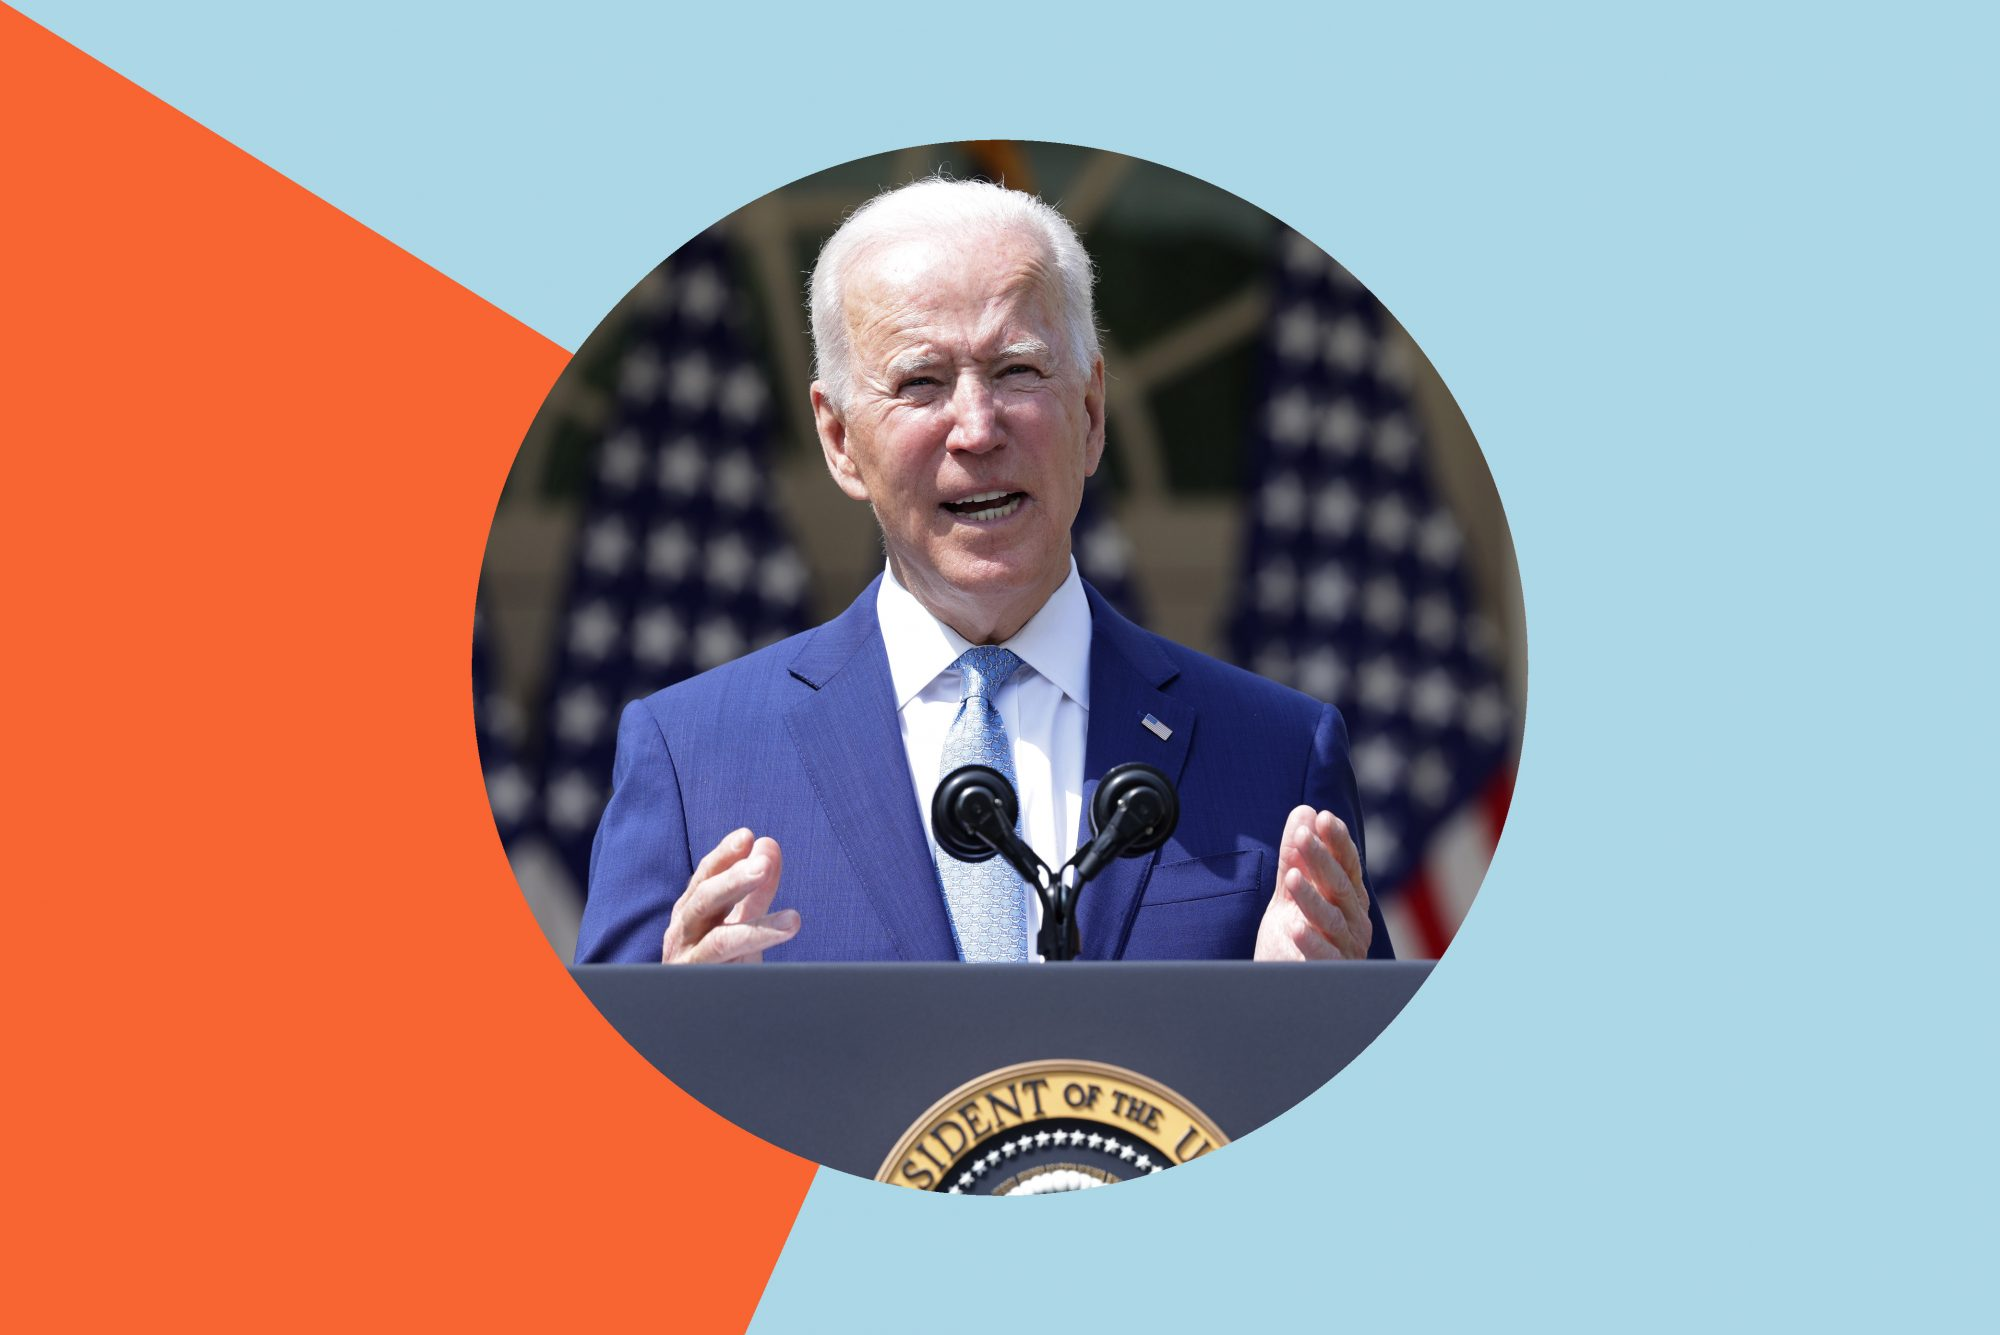 An image of Joe Biden on a colorful background.